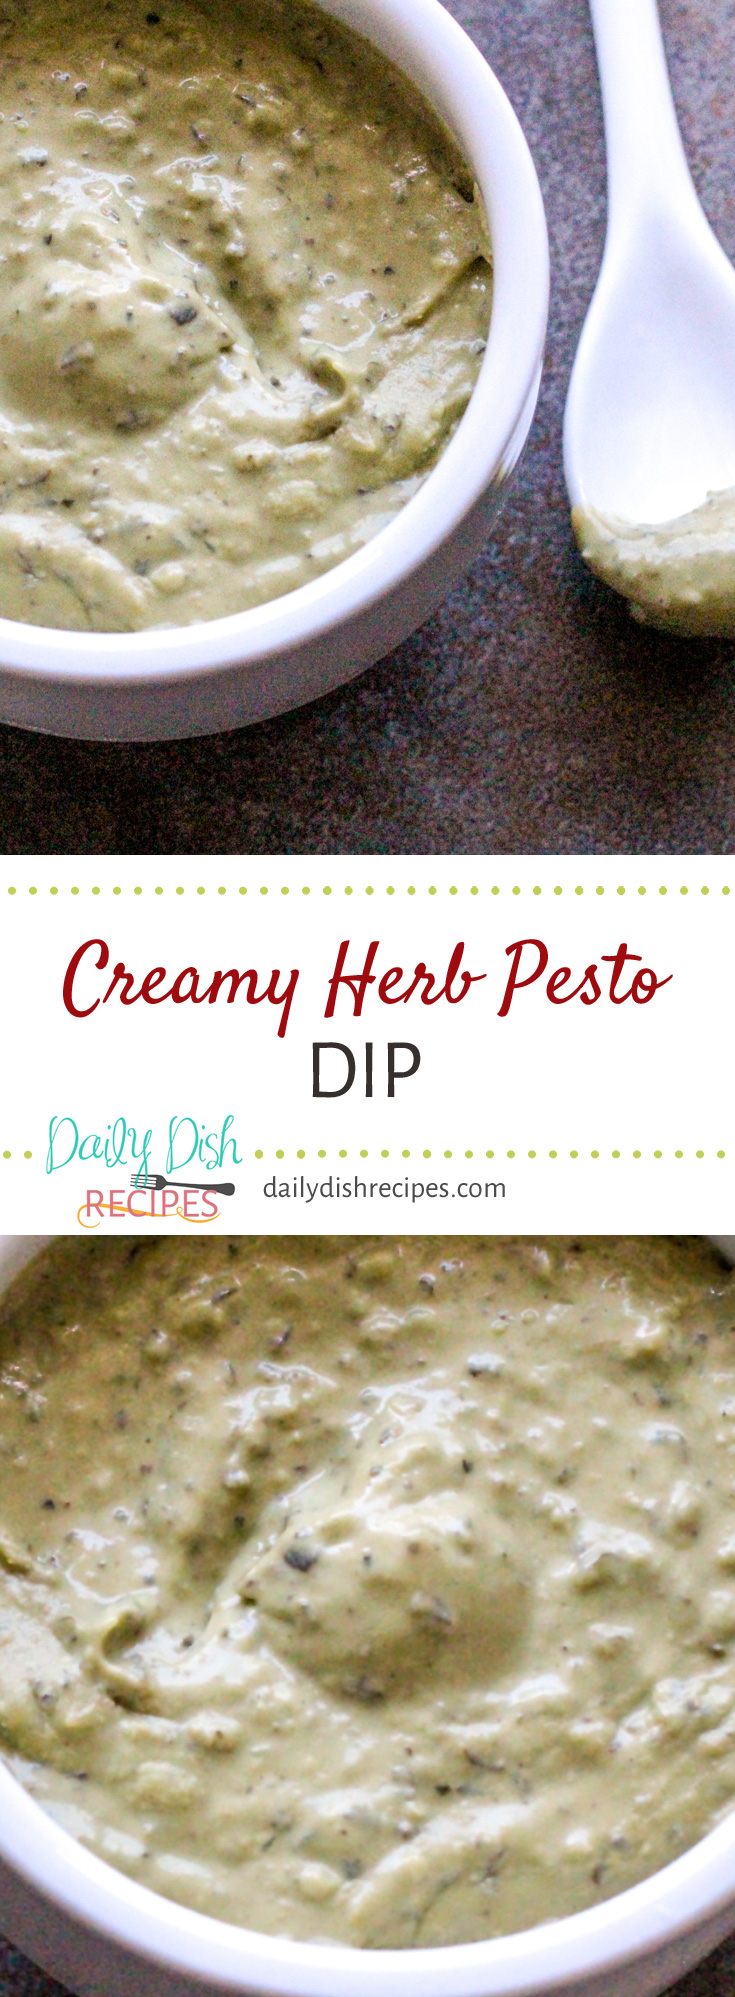 The perfect dip for any get together - this zesty, Creamy Herb Pesto Dip is great with chips, bread, veggies and more!